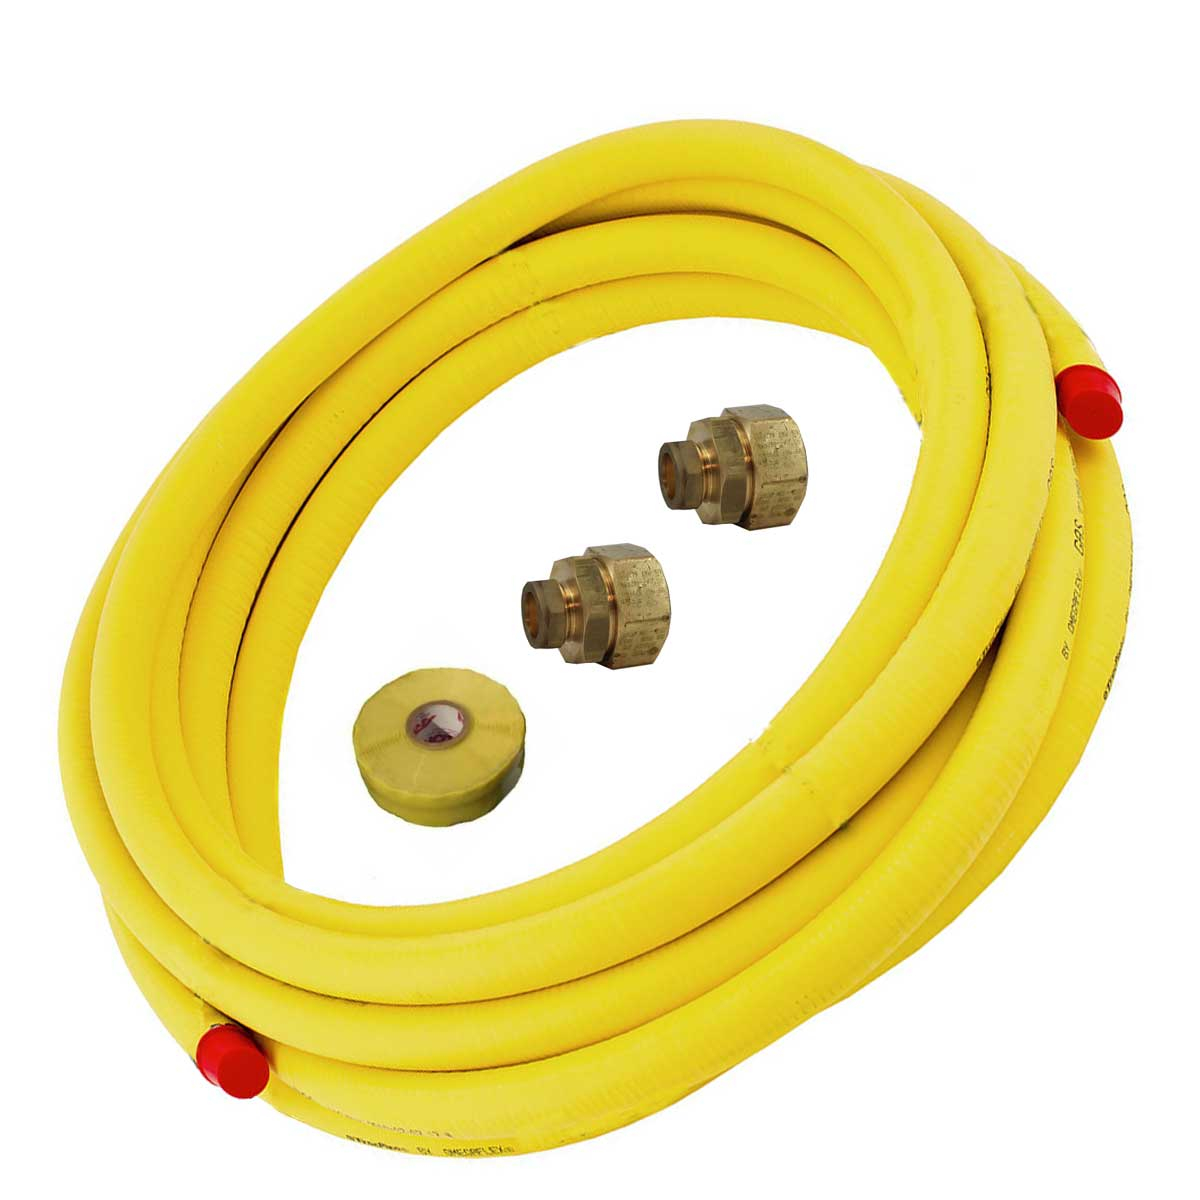 TracPipe 15m Flexible Gas Pipe Fittings and Tape Pack 28mm